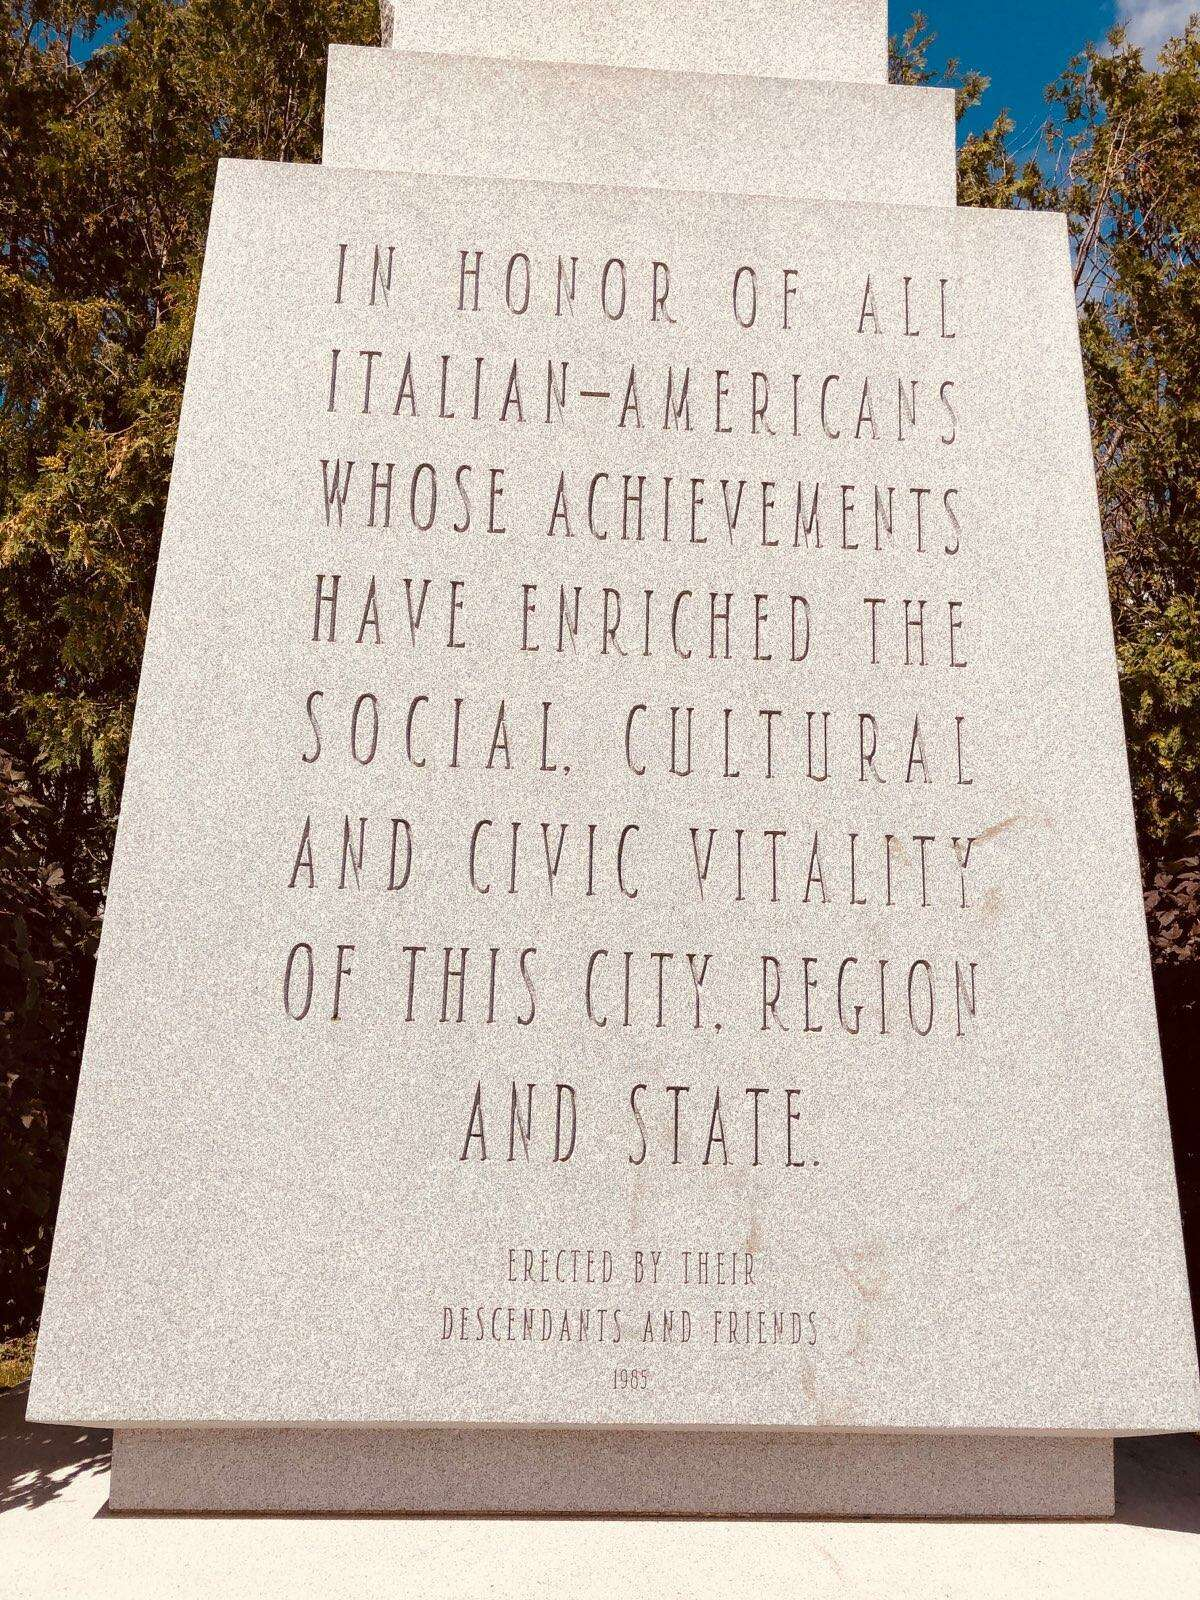 The plaque on the Italian-American Monument in Barre, Vt.